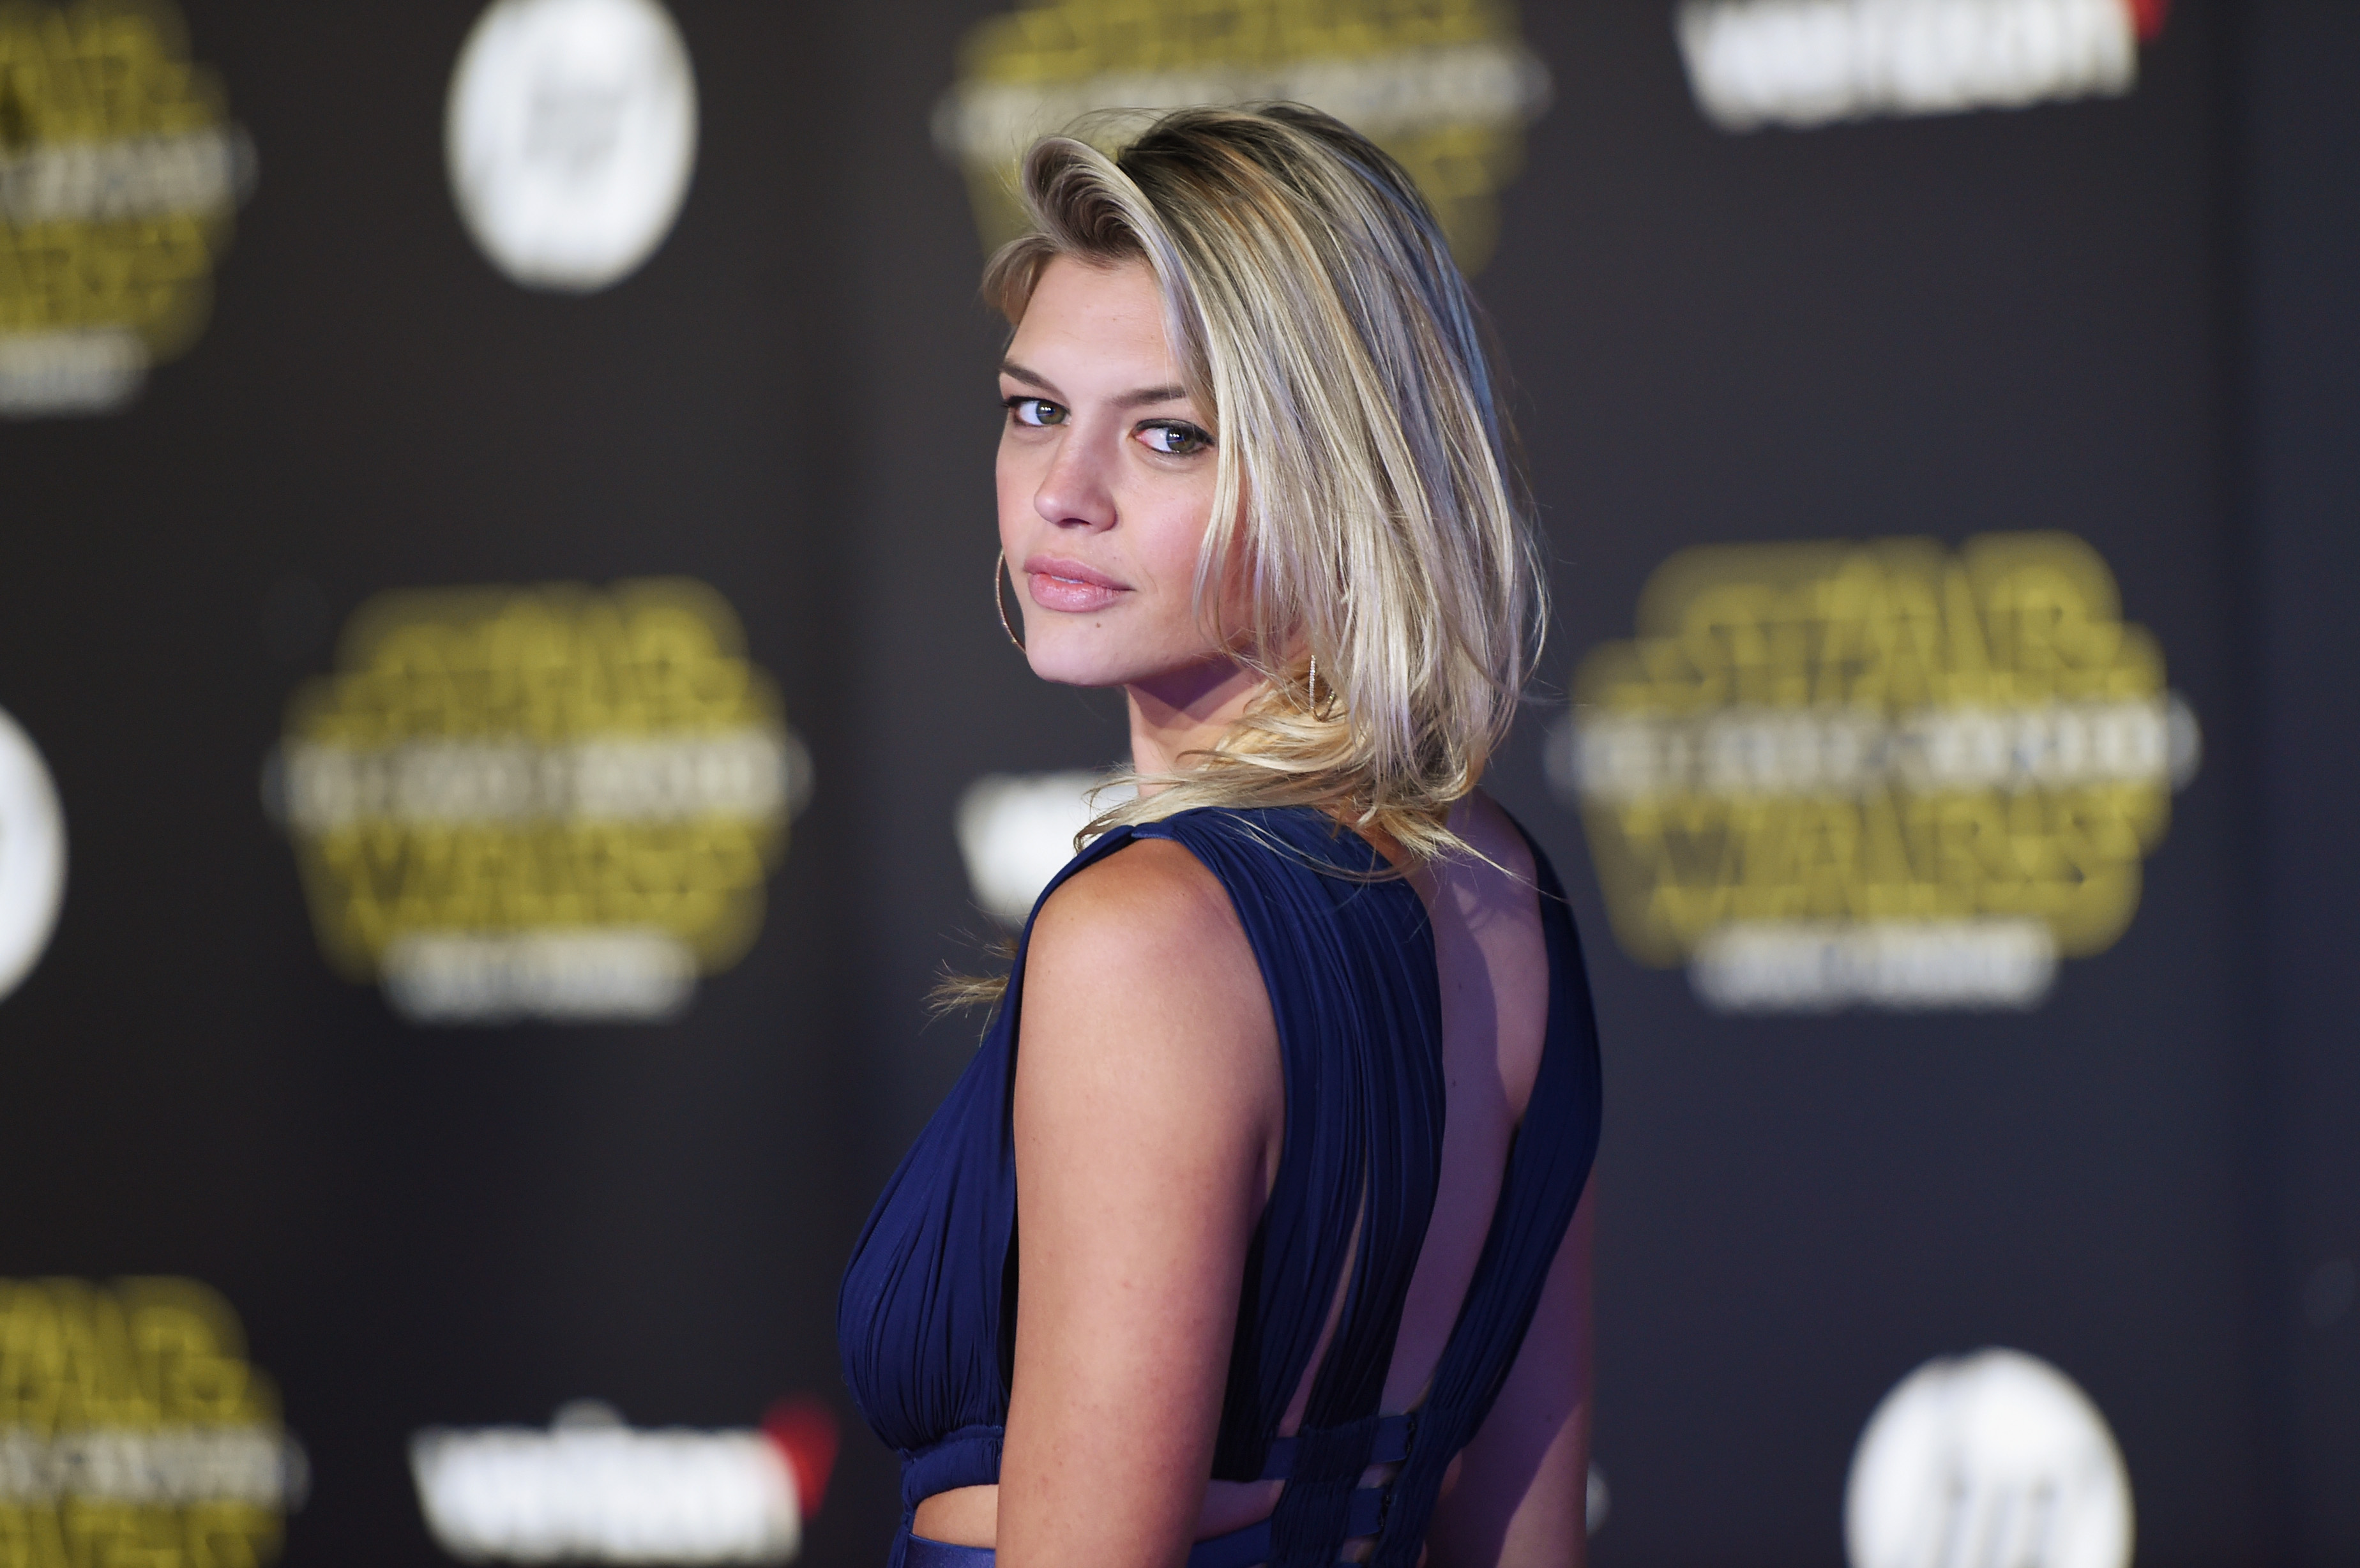 Model Kelly Rohrbach attends the premiere of Walt Disney Pictures and Lucasfilm's  Star Wars: The Force Awakens  in Hollywood, Calif. on December 14, 2015.